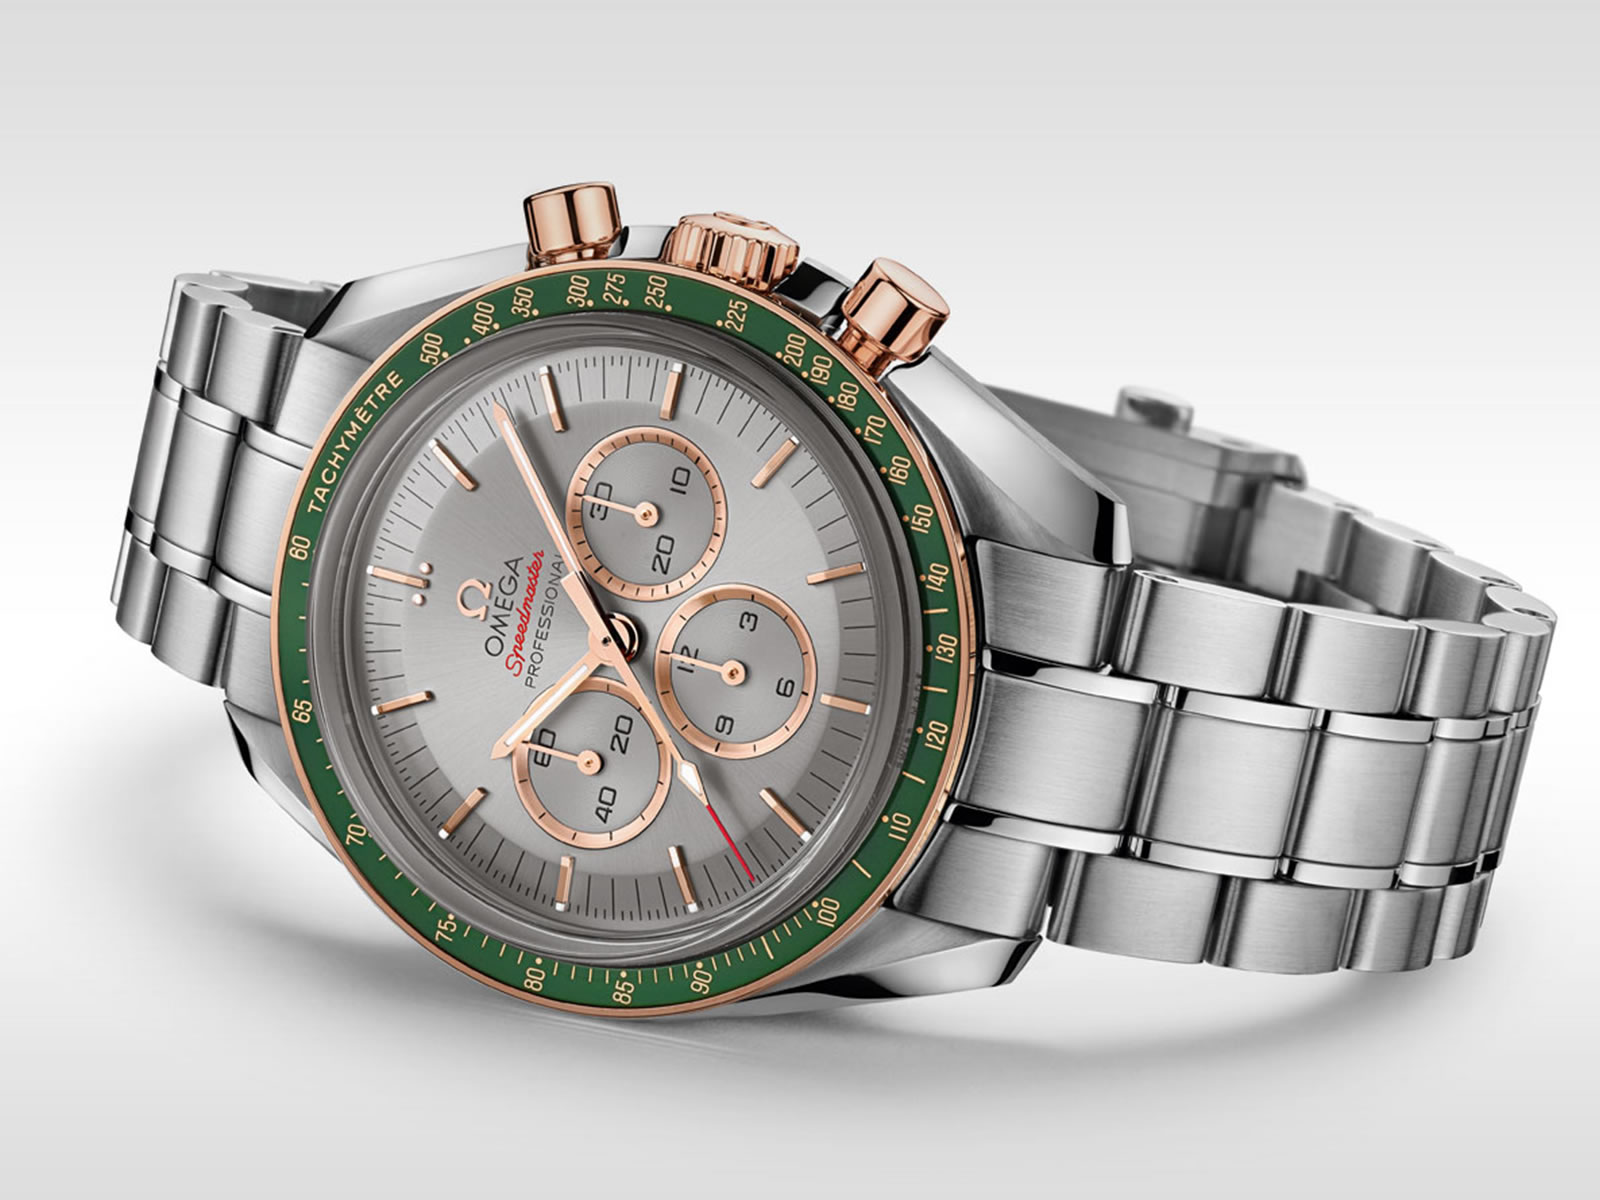 522-20-42-30-06-001-omega-olympic-games-2020-speedmaster-1-.jpg